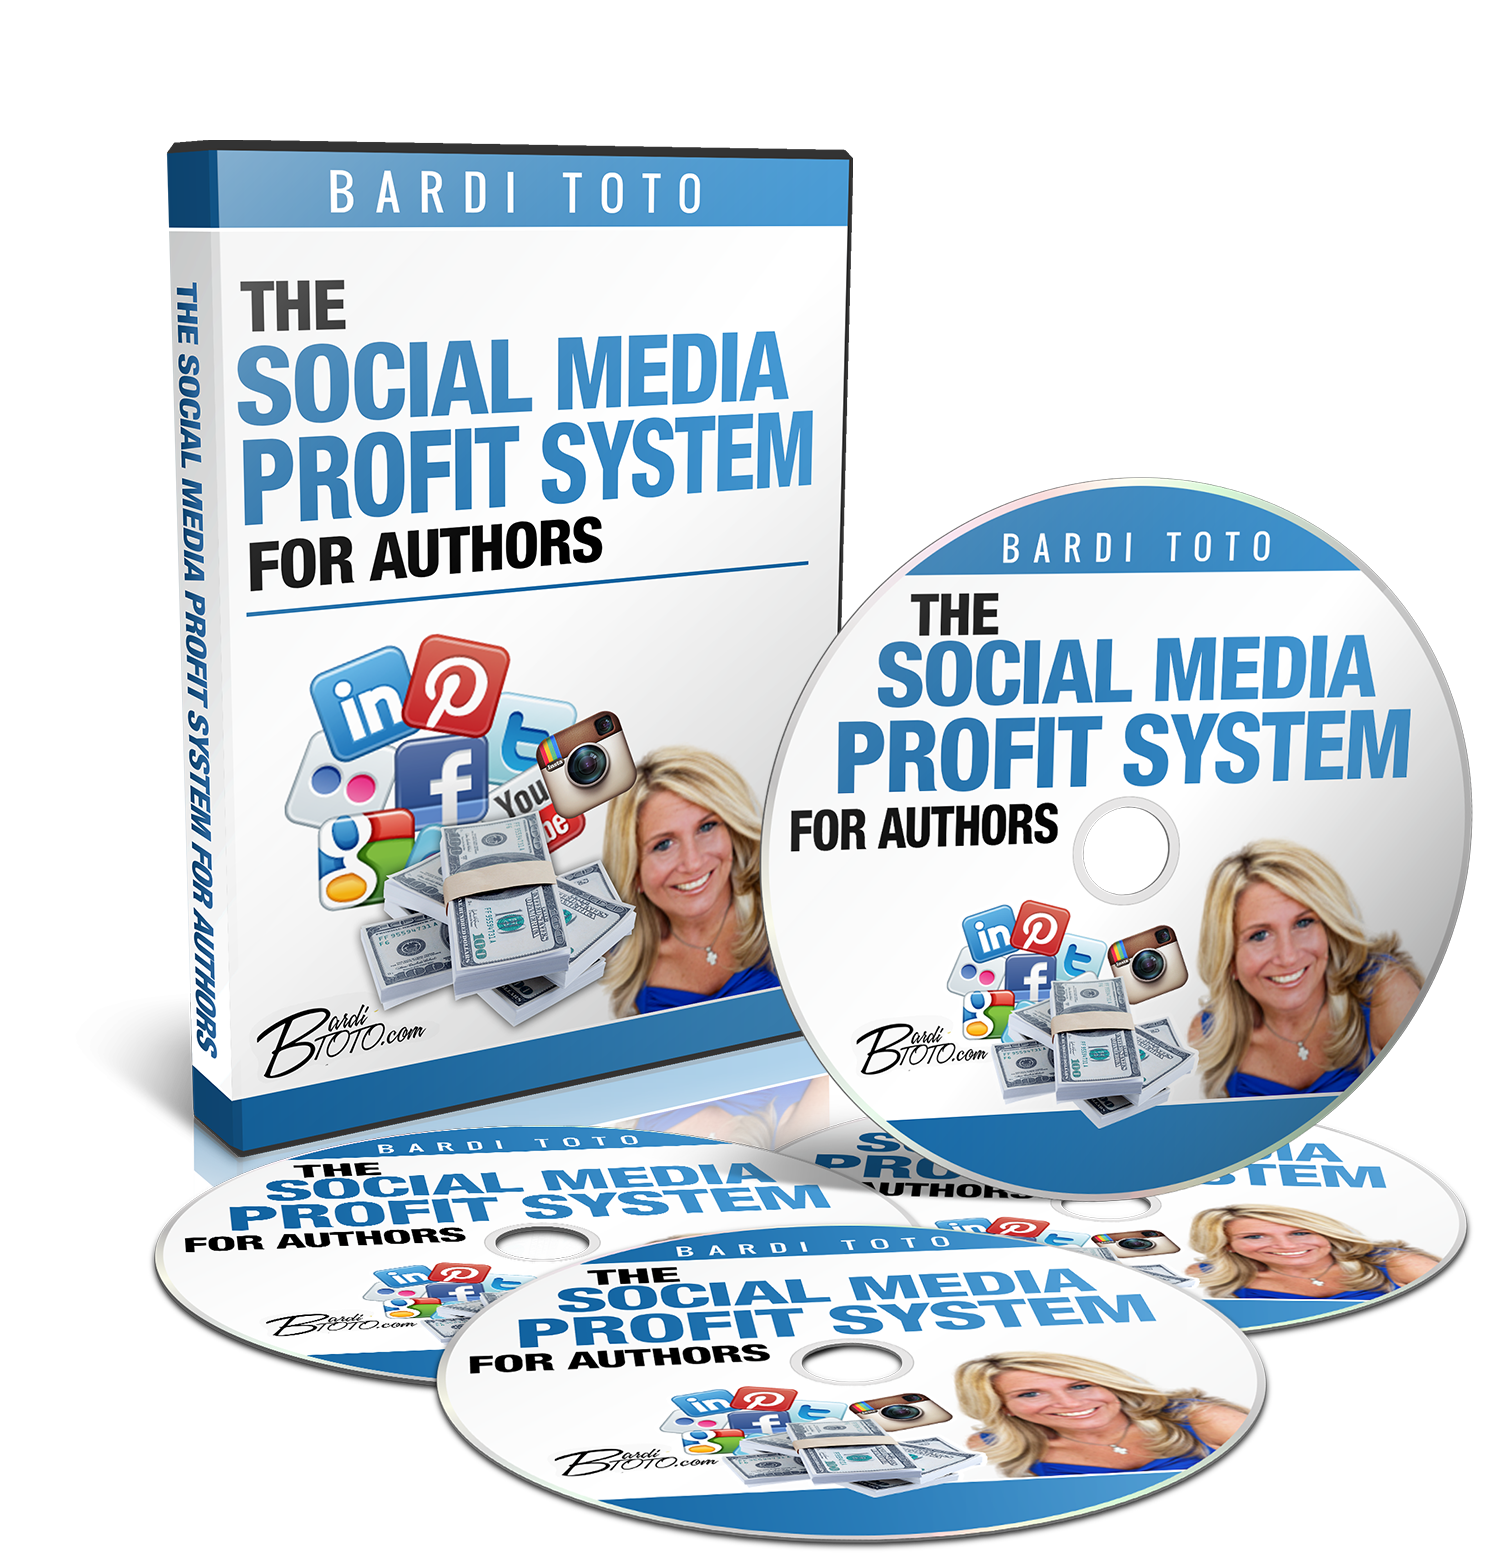 The_Social_Media_Profit_System_for_Authors_00